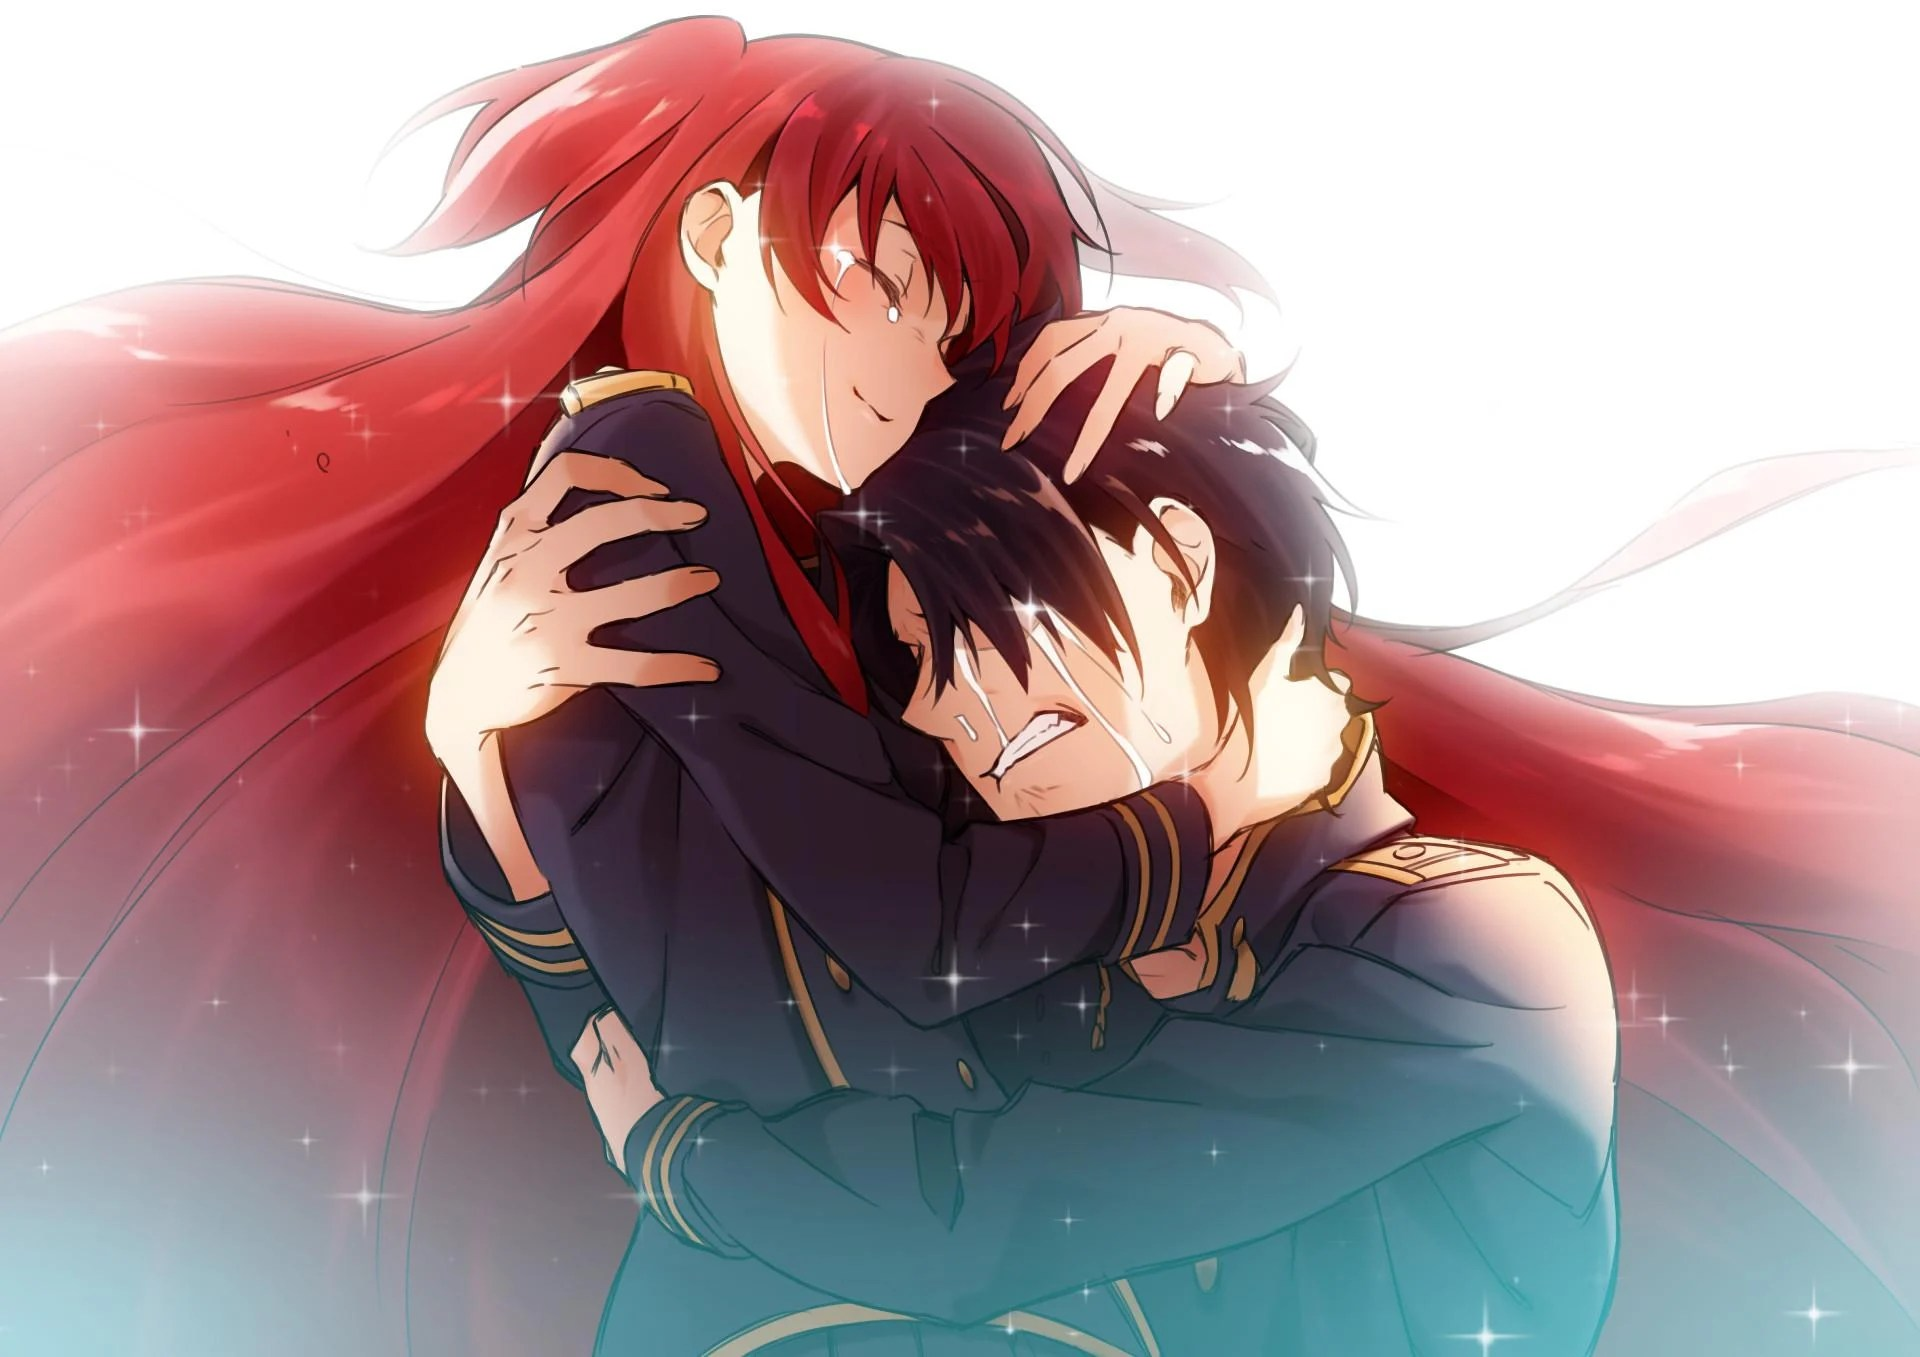 The Cutest Anime Couple Wallpapers - Wallpaper Cave